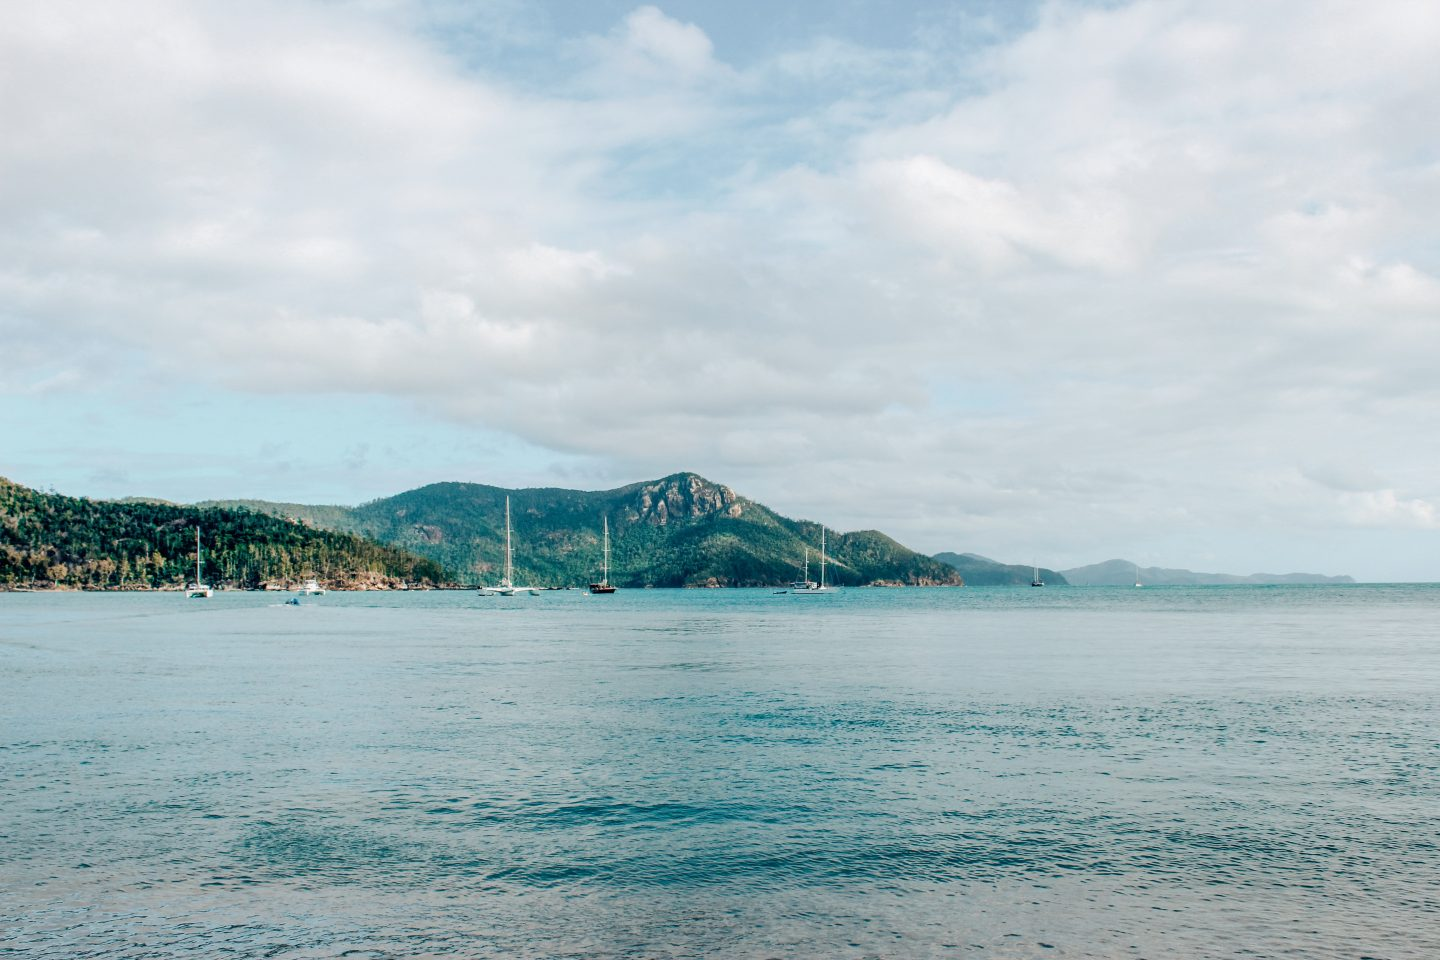 View of the Whitsunday Islands from Airlie Beach, Queensland.